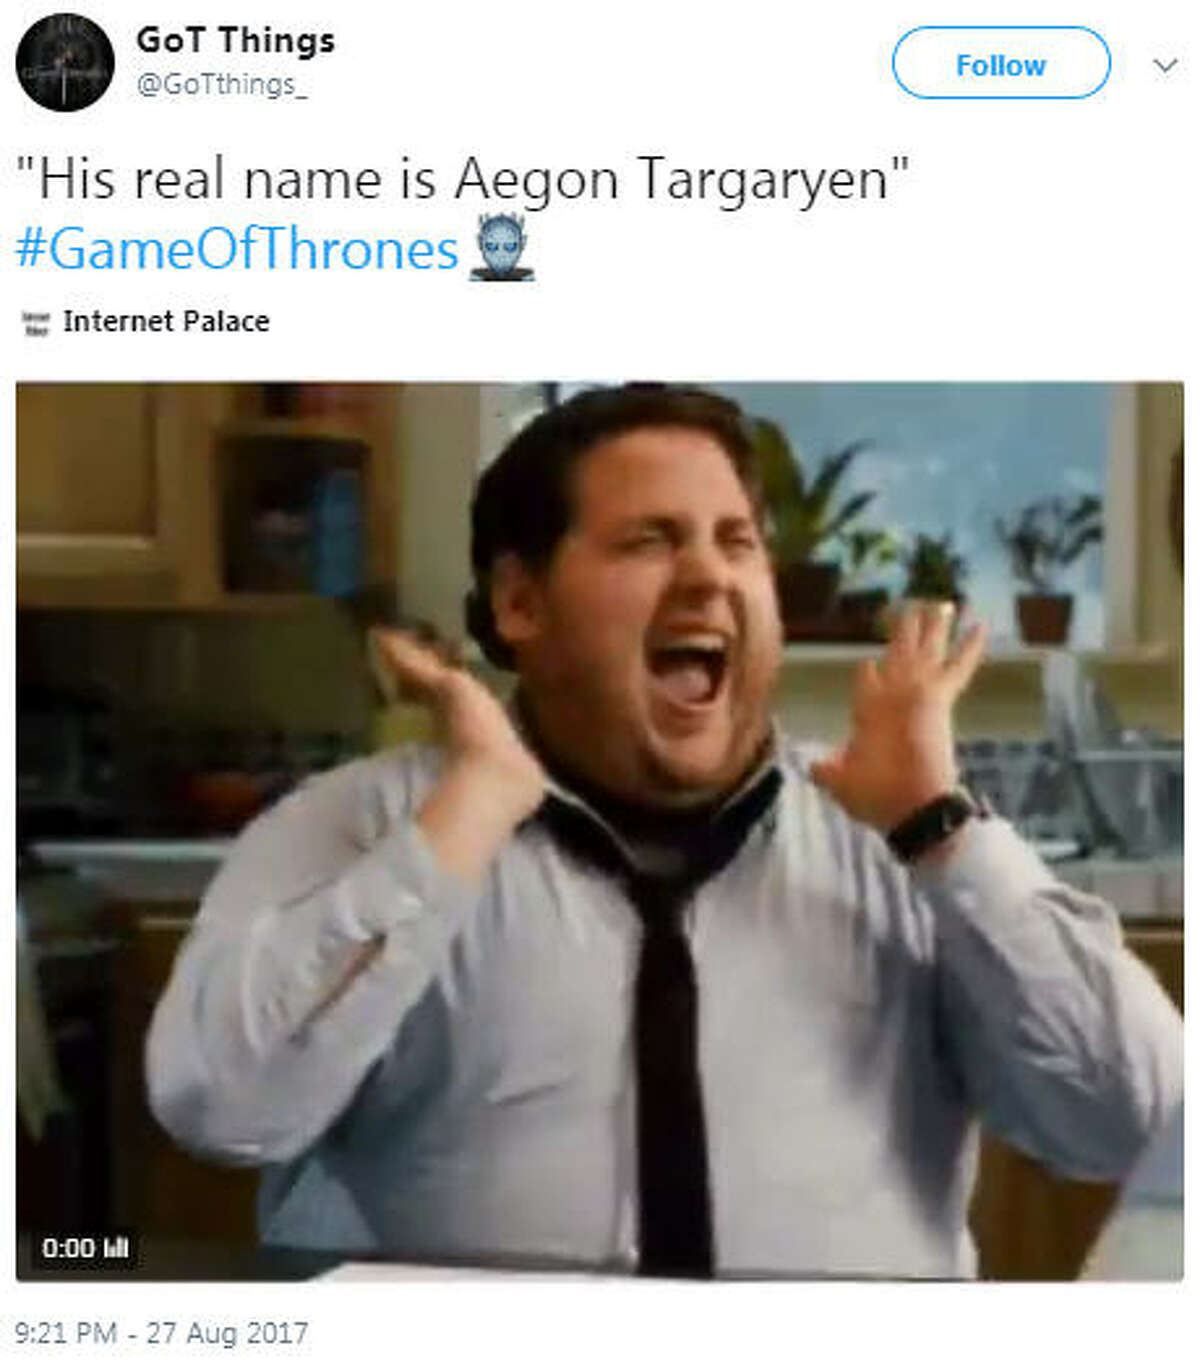 """""""His real name is Aegon Targaryen"""" #GameOfThrones """" Source: Twitter The season seven finale provided the biggest reveal in the series so far: Jon Snow is actually the legitimate son of Rhaegar Targaryen and Lyanna Stark. Thus, making him the true heir to the Iron Throne."""